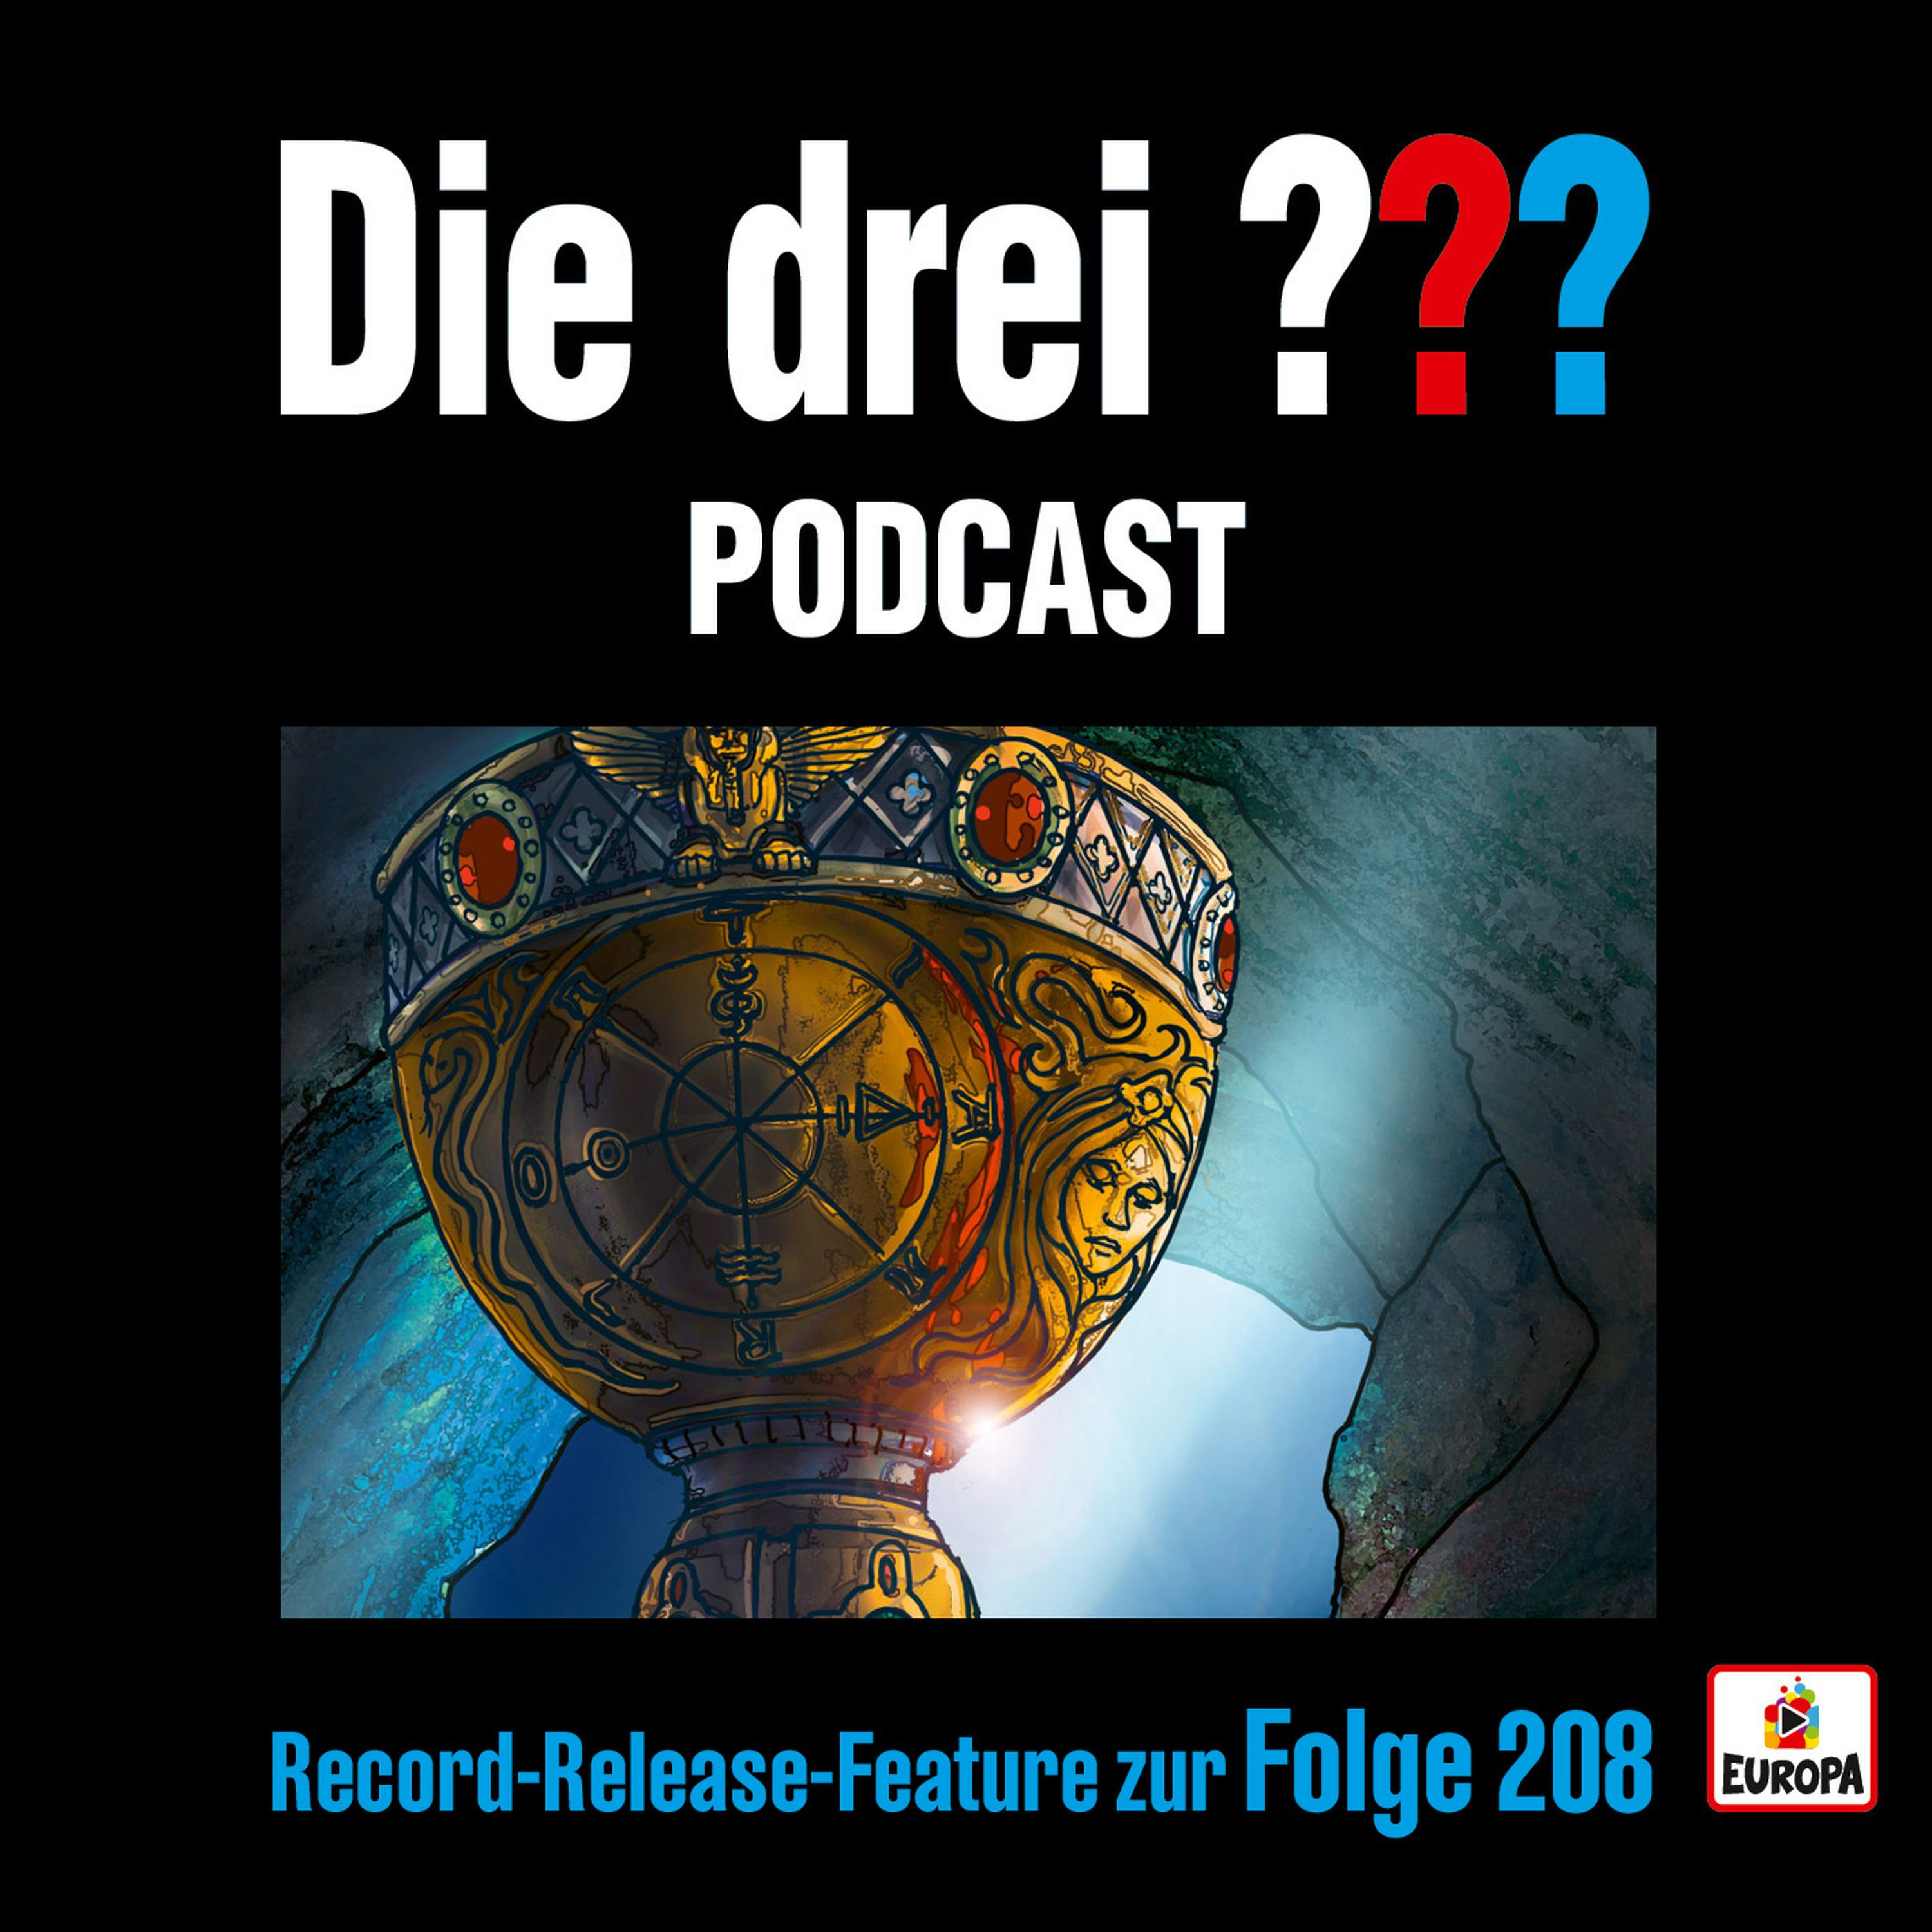 Record-Release-Feature zur Folge 208